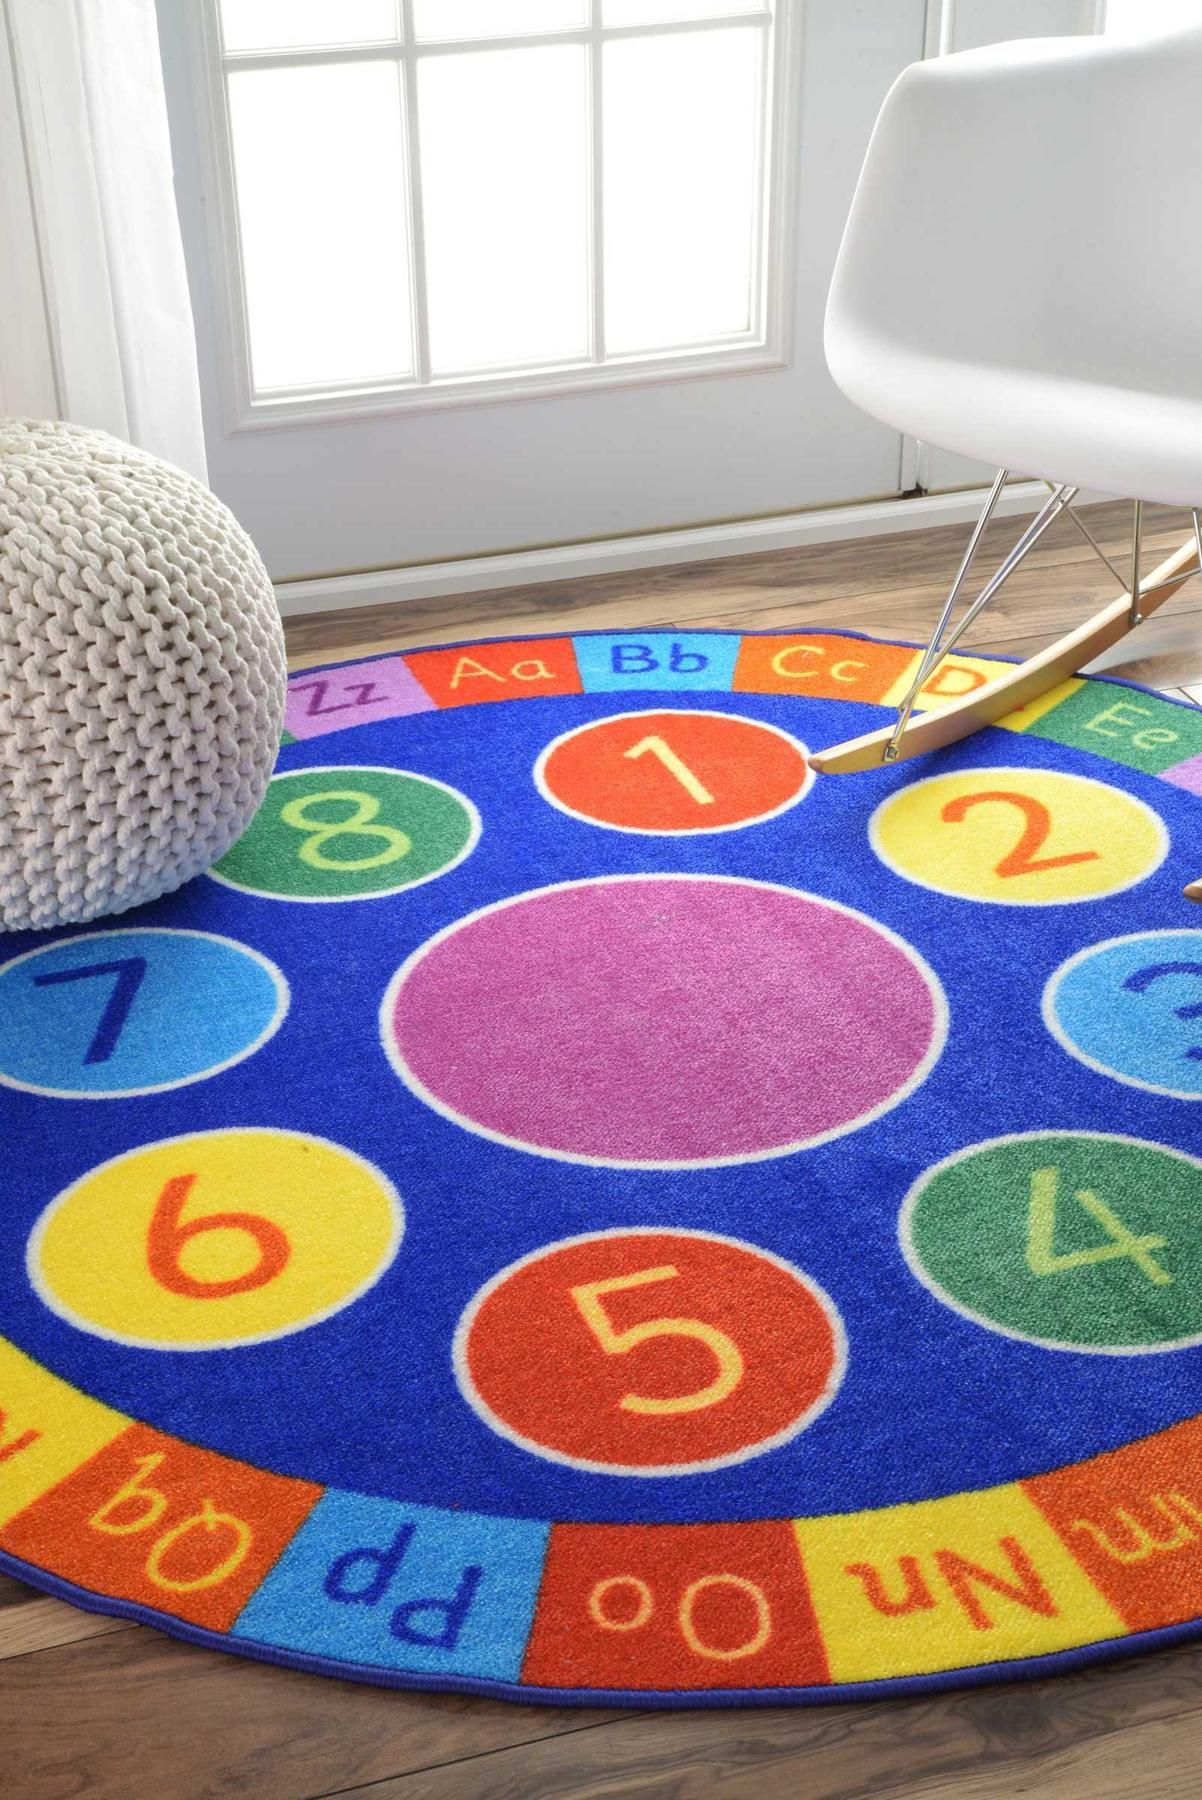 Number Circles Color Blue Size 8 Square With Images Kids